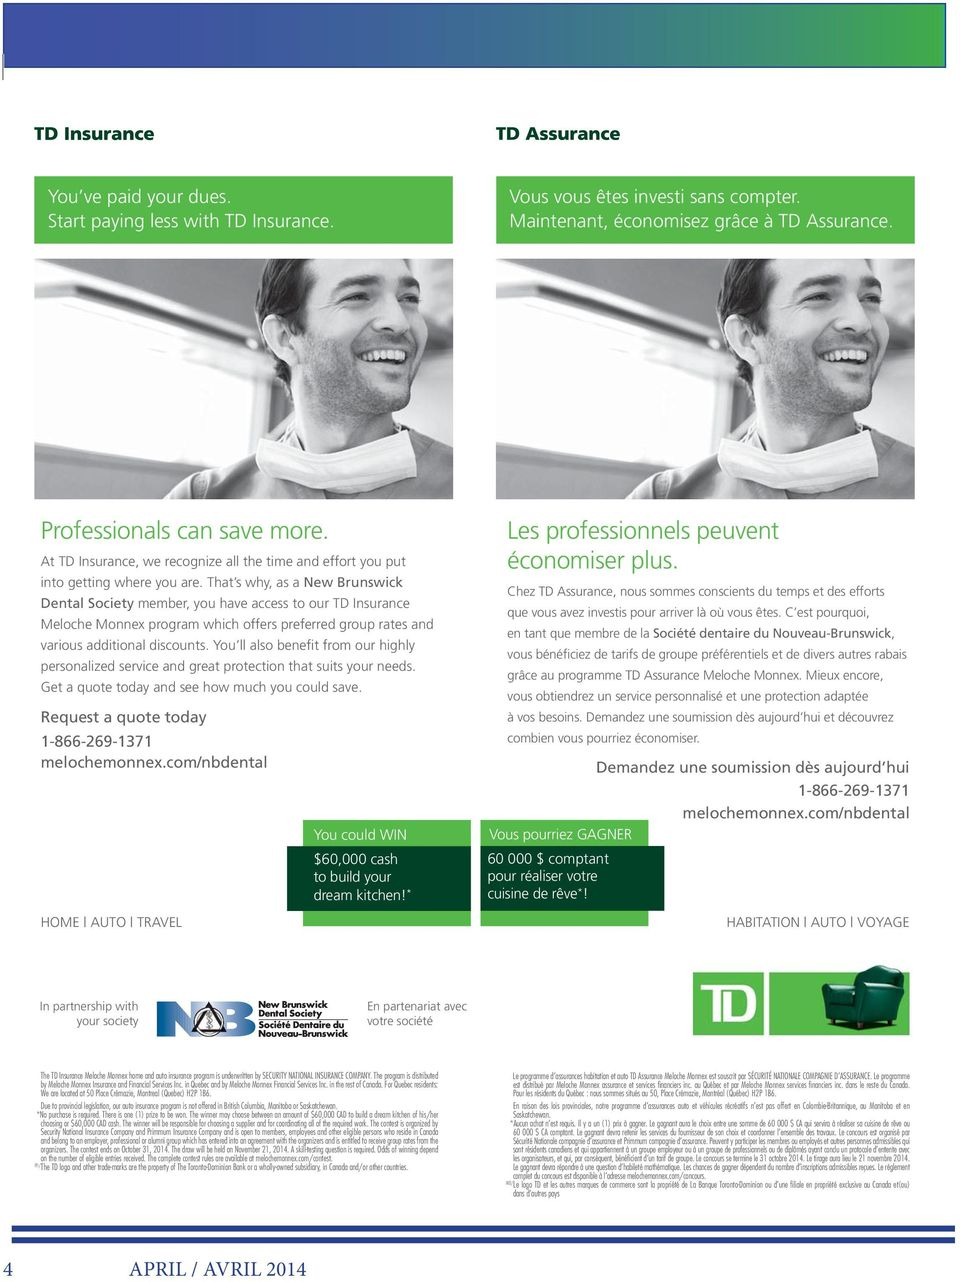 That s why, as a New Brunswick Dental Society member, you have access to our TD Insurance Meloche Monnex program which offers preferred group rates and various additional discounts.